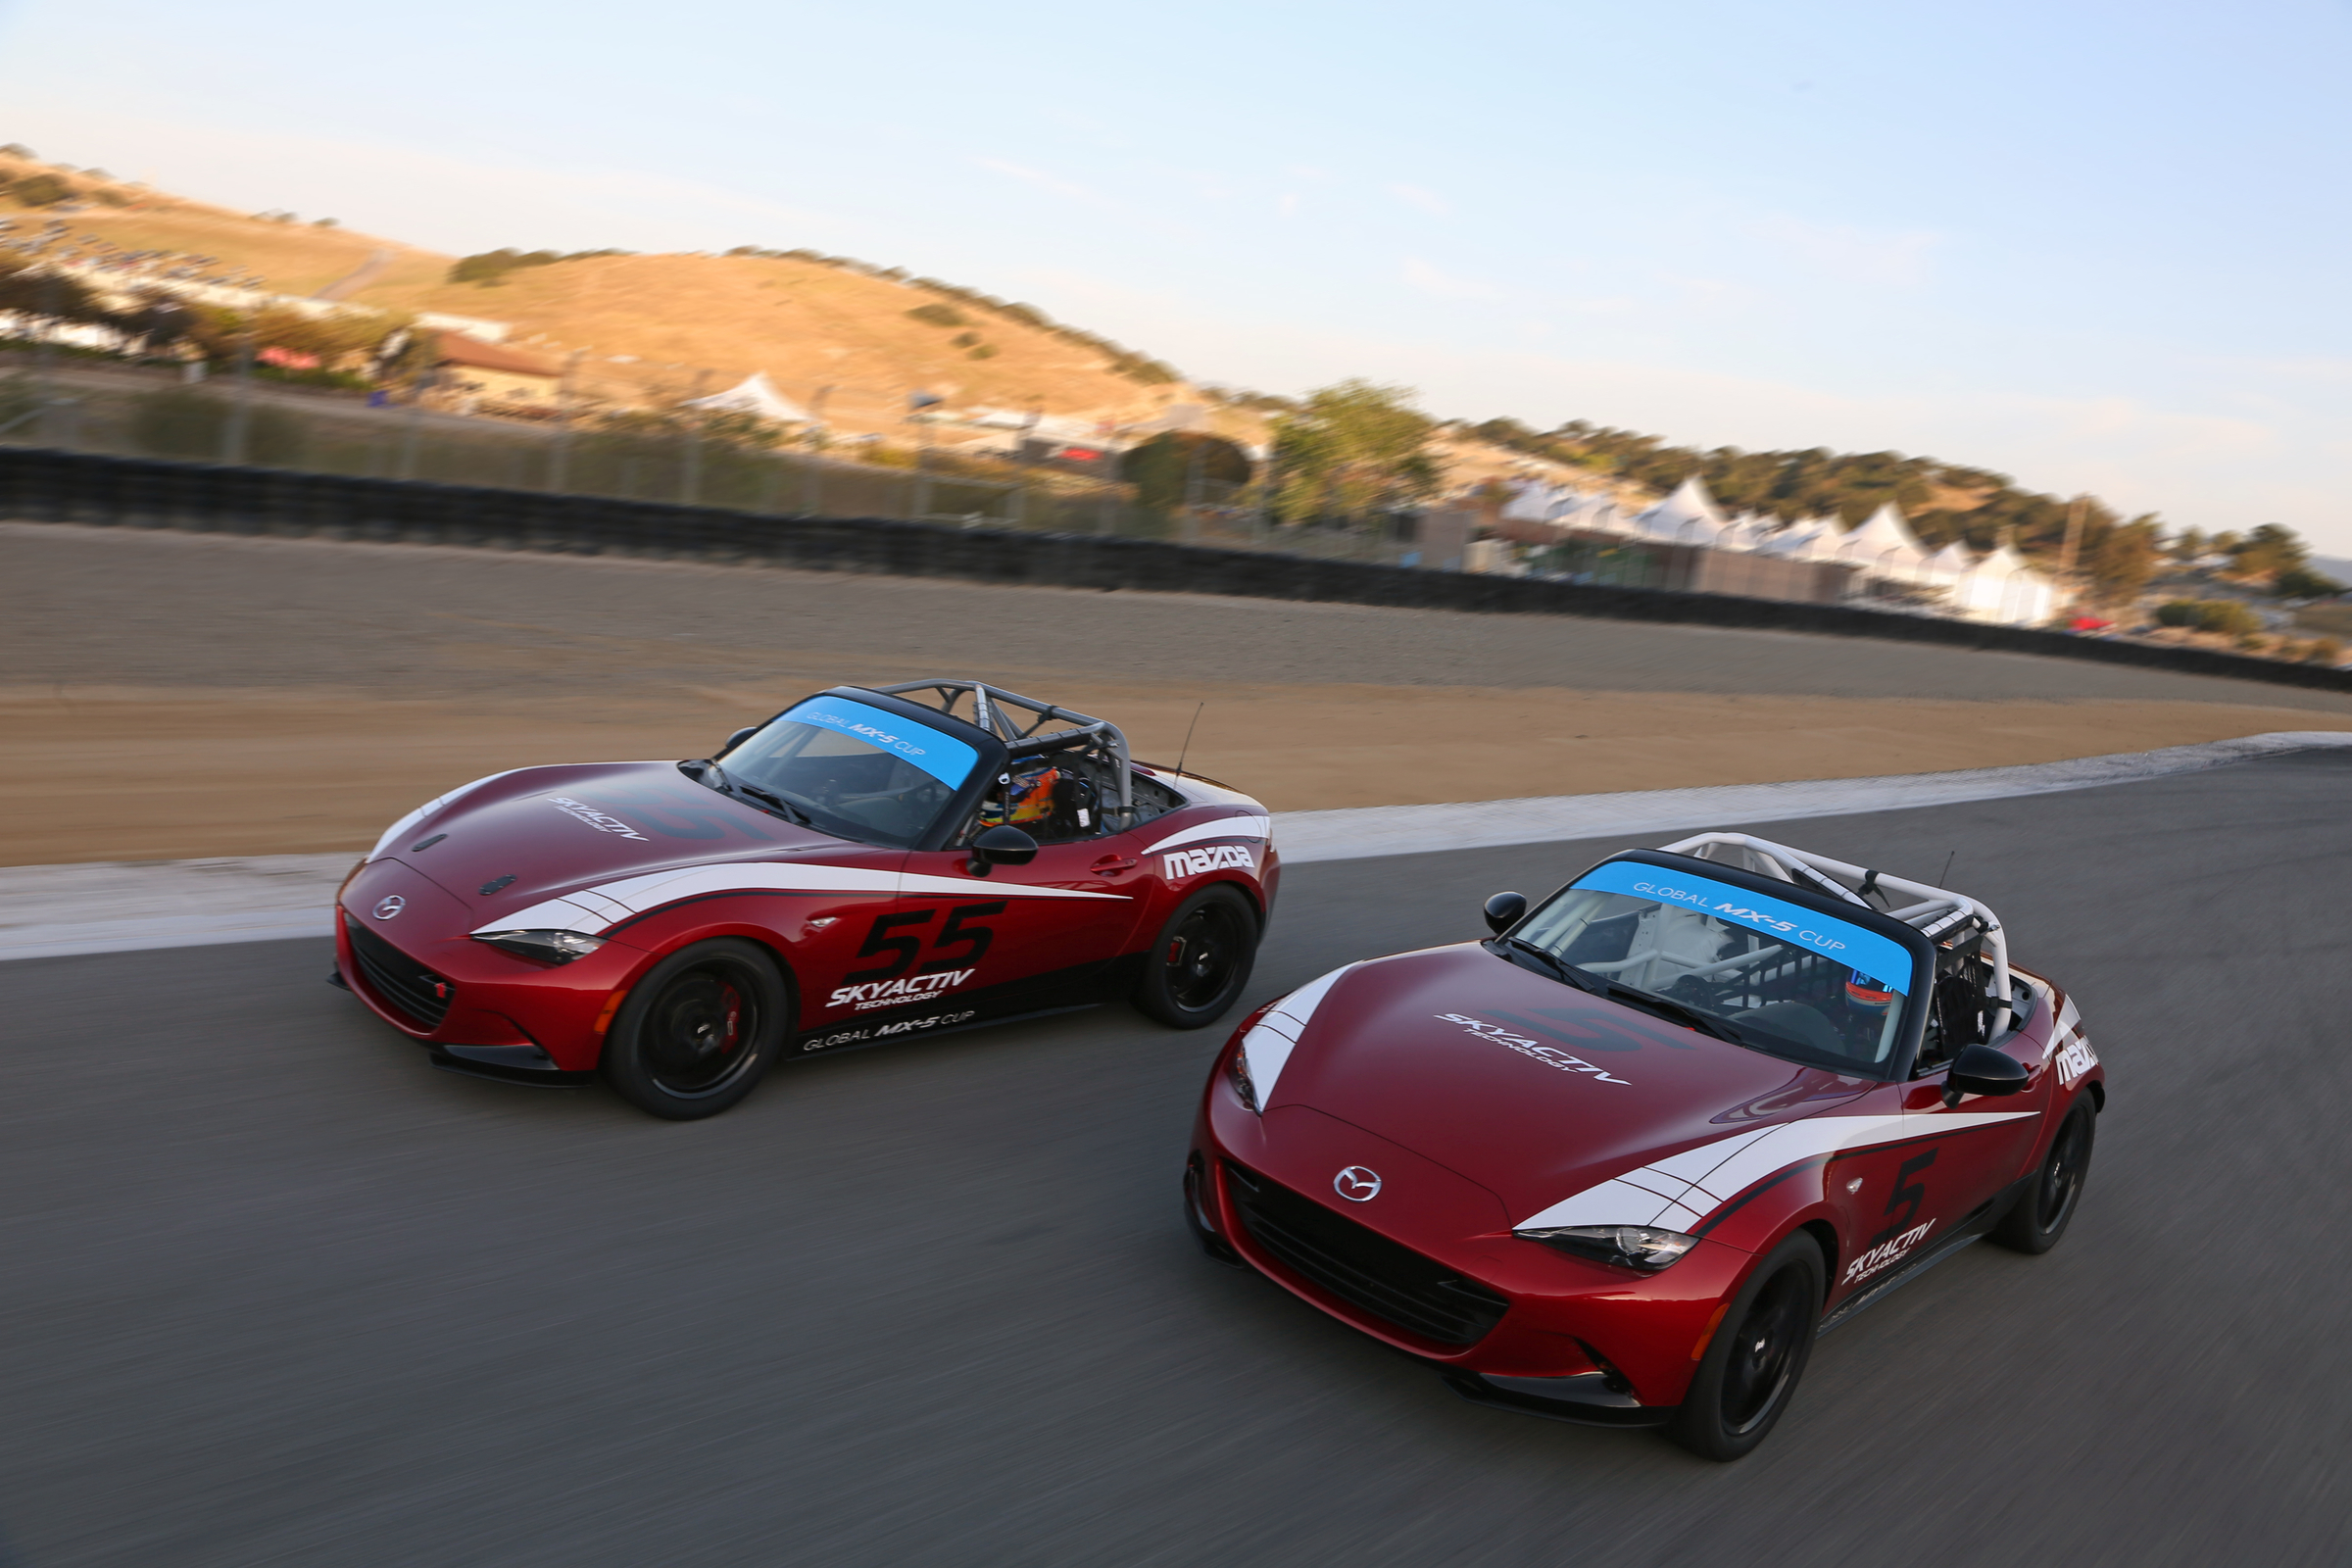 Global MX-5 Cup Race Car Pricing - Inside Mazda